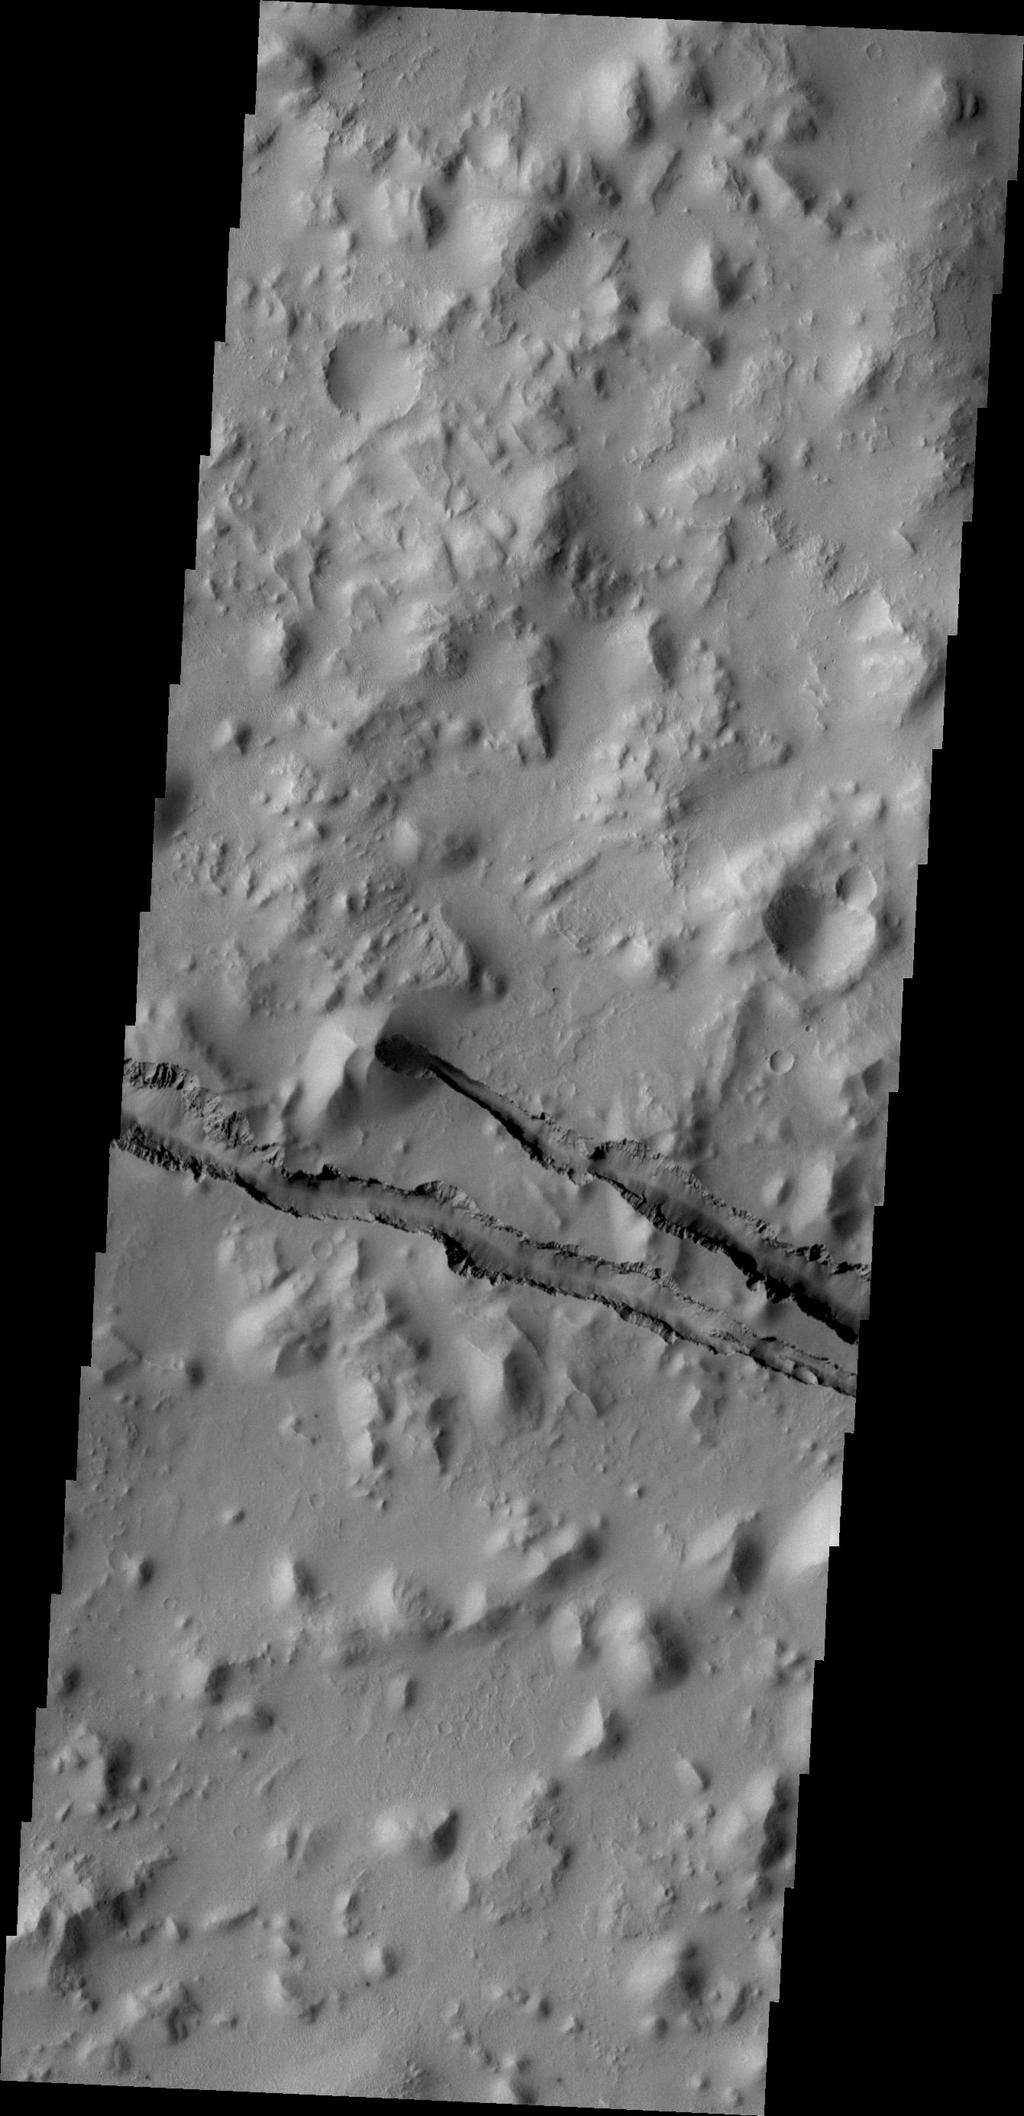 The fractures in this image taken by NASA's 2001 Mars Odyssey spacecraft are part of Cerberus Fossae.